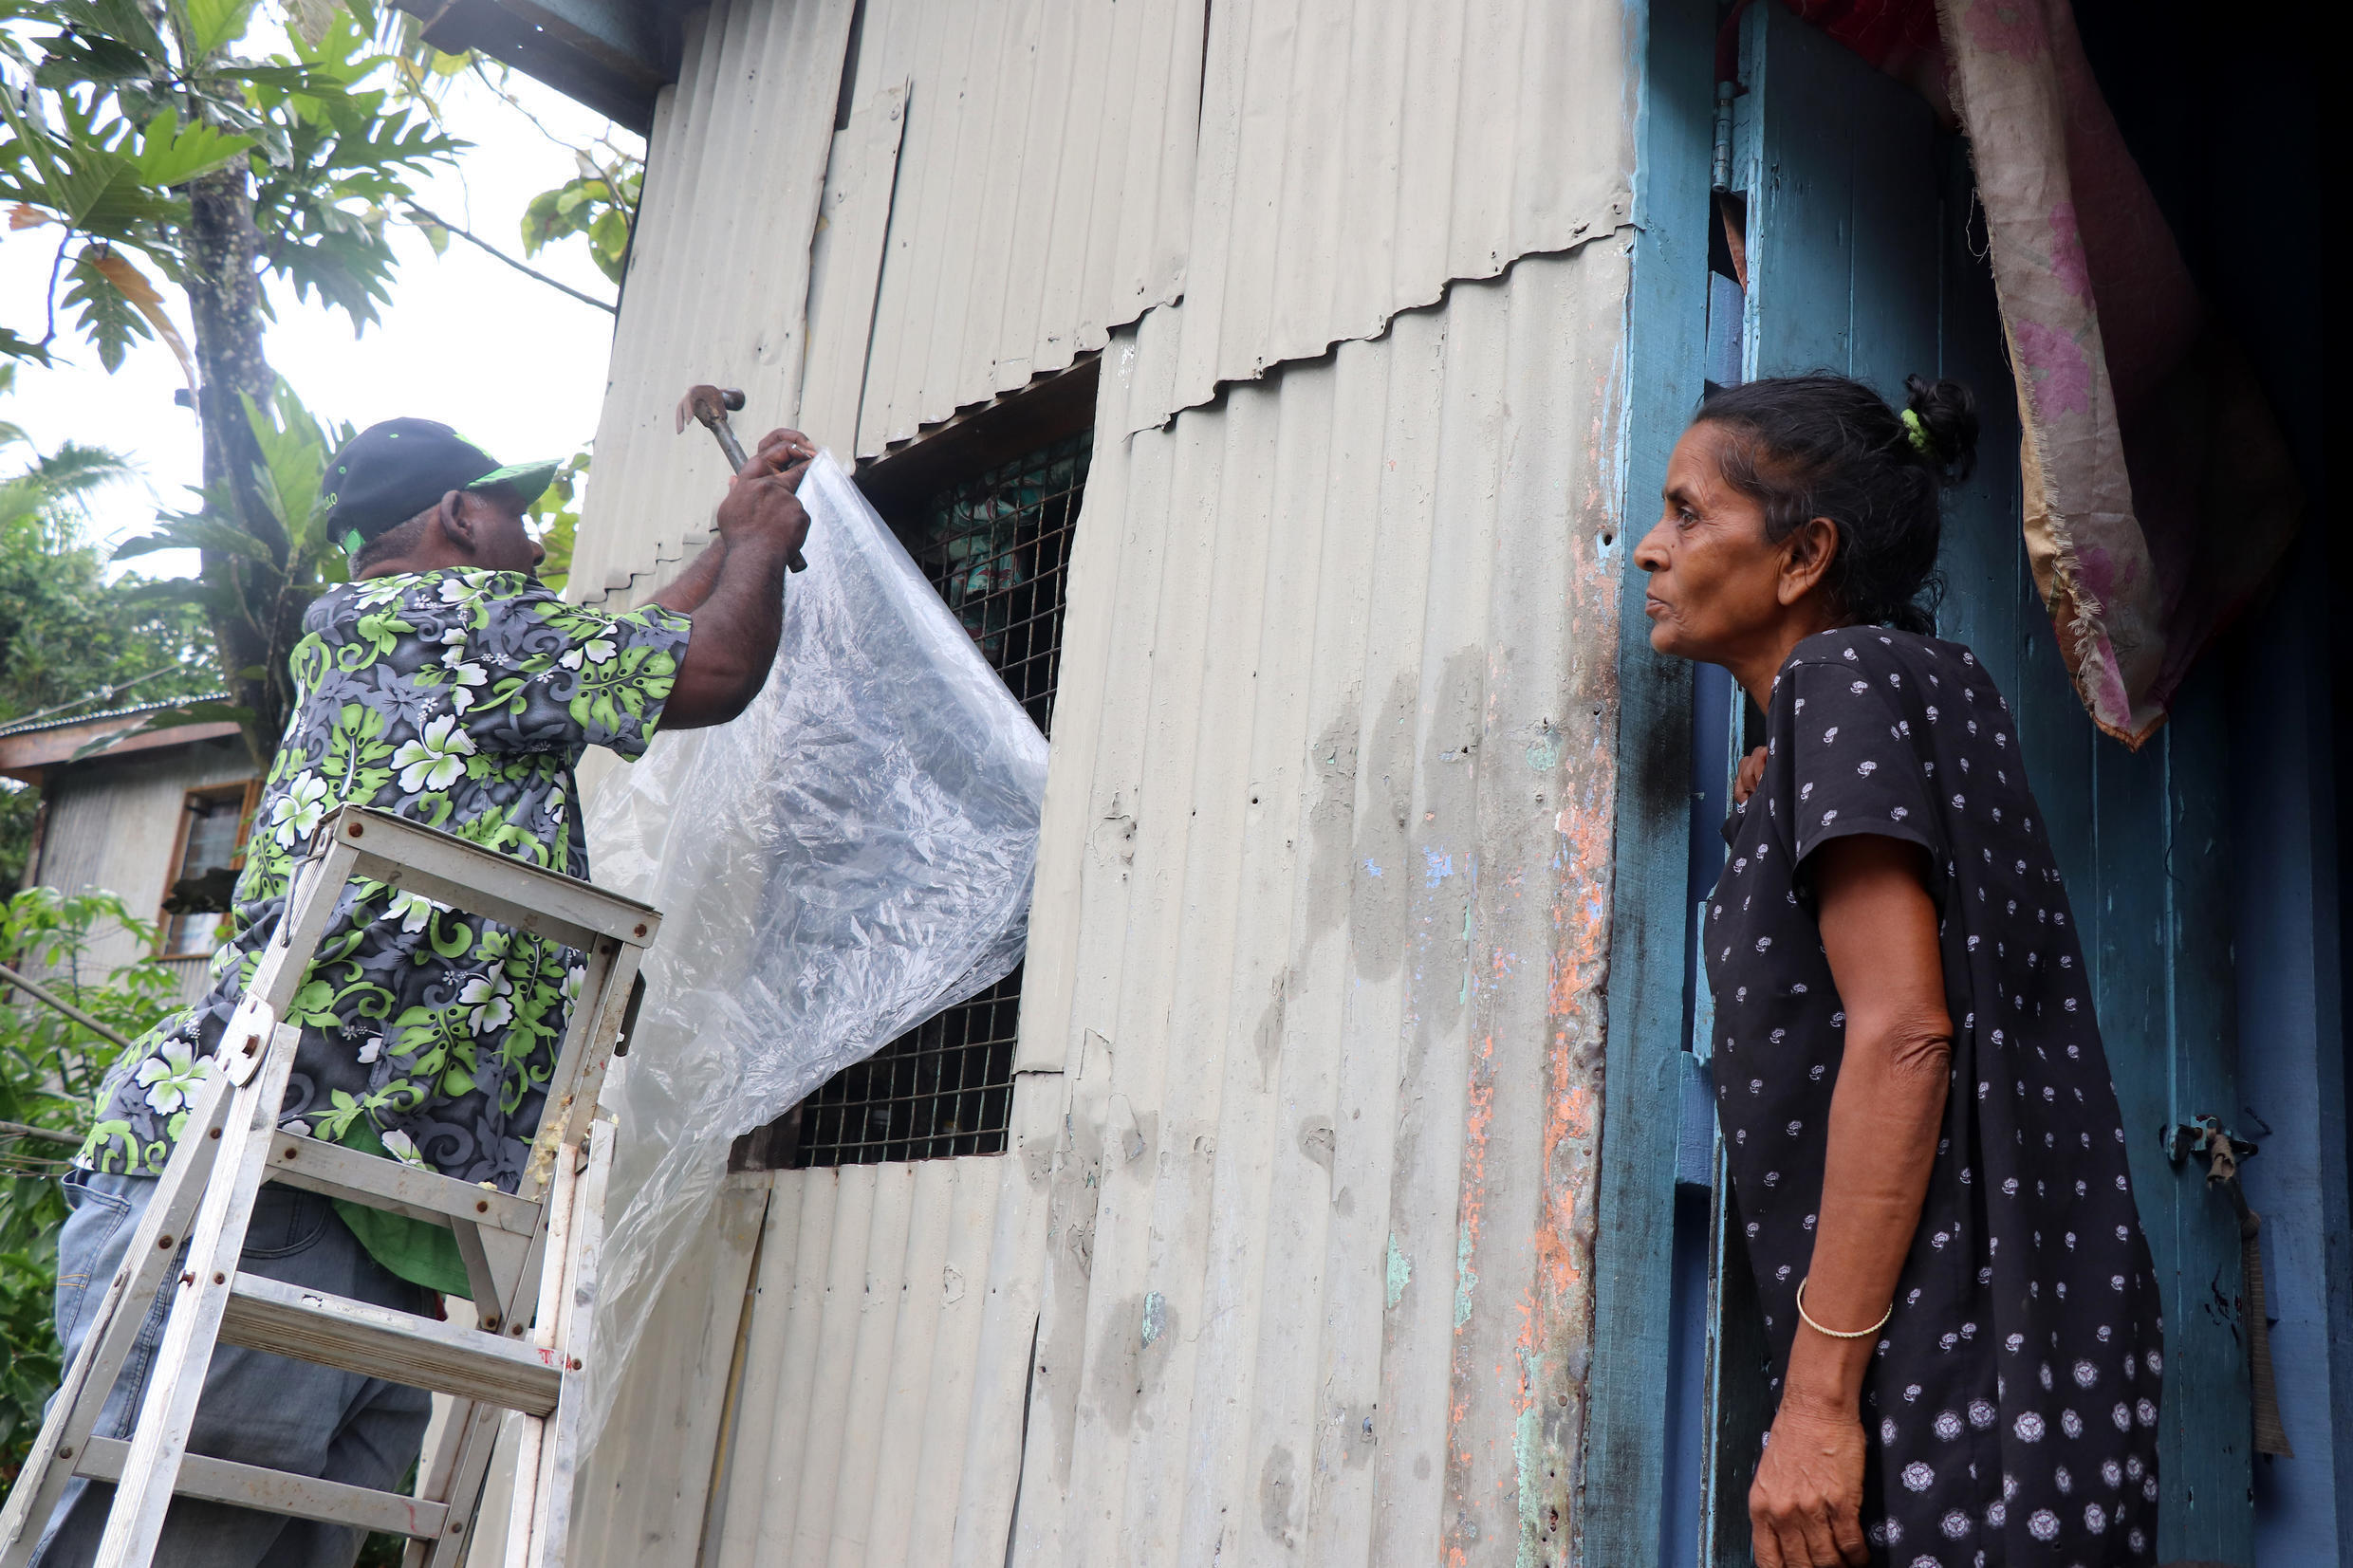 A resident secures his house by placing plastic sheets on the windows ahead of the arrival of super Cyclone Yasa in Fiji's capital city of Suva